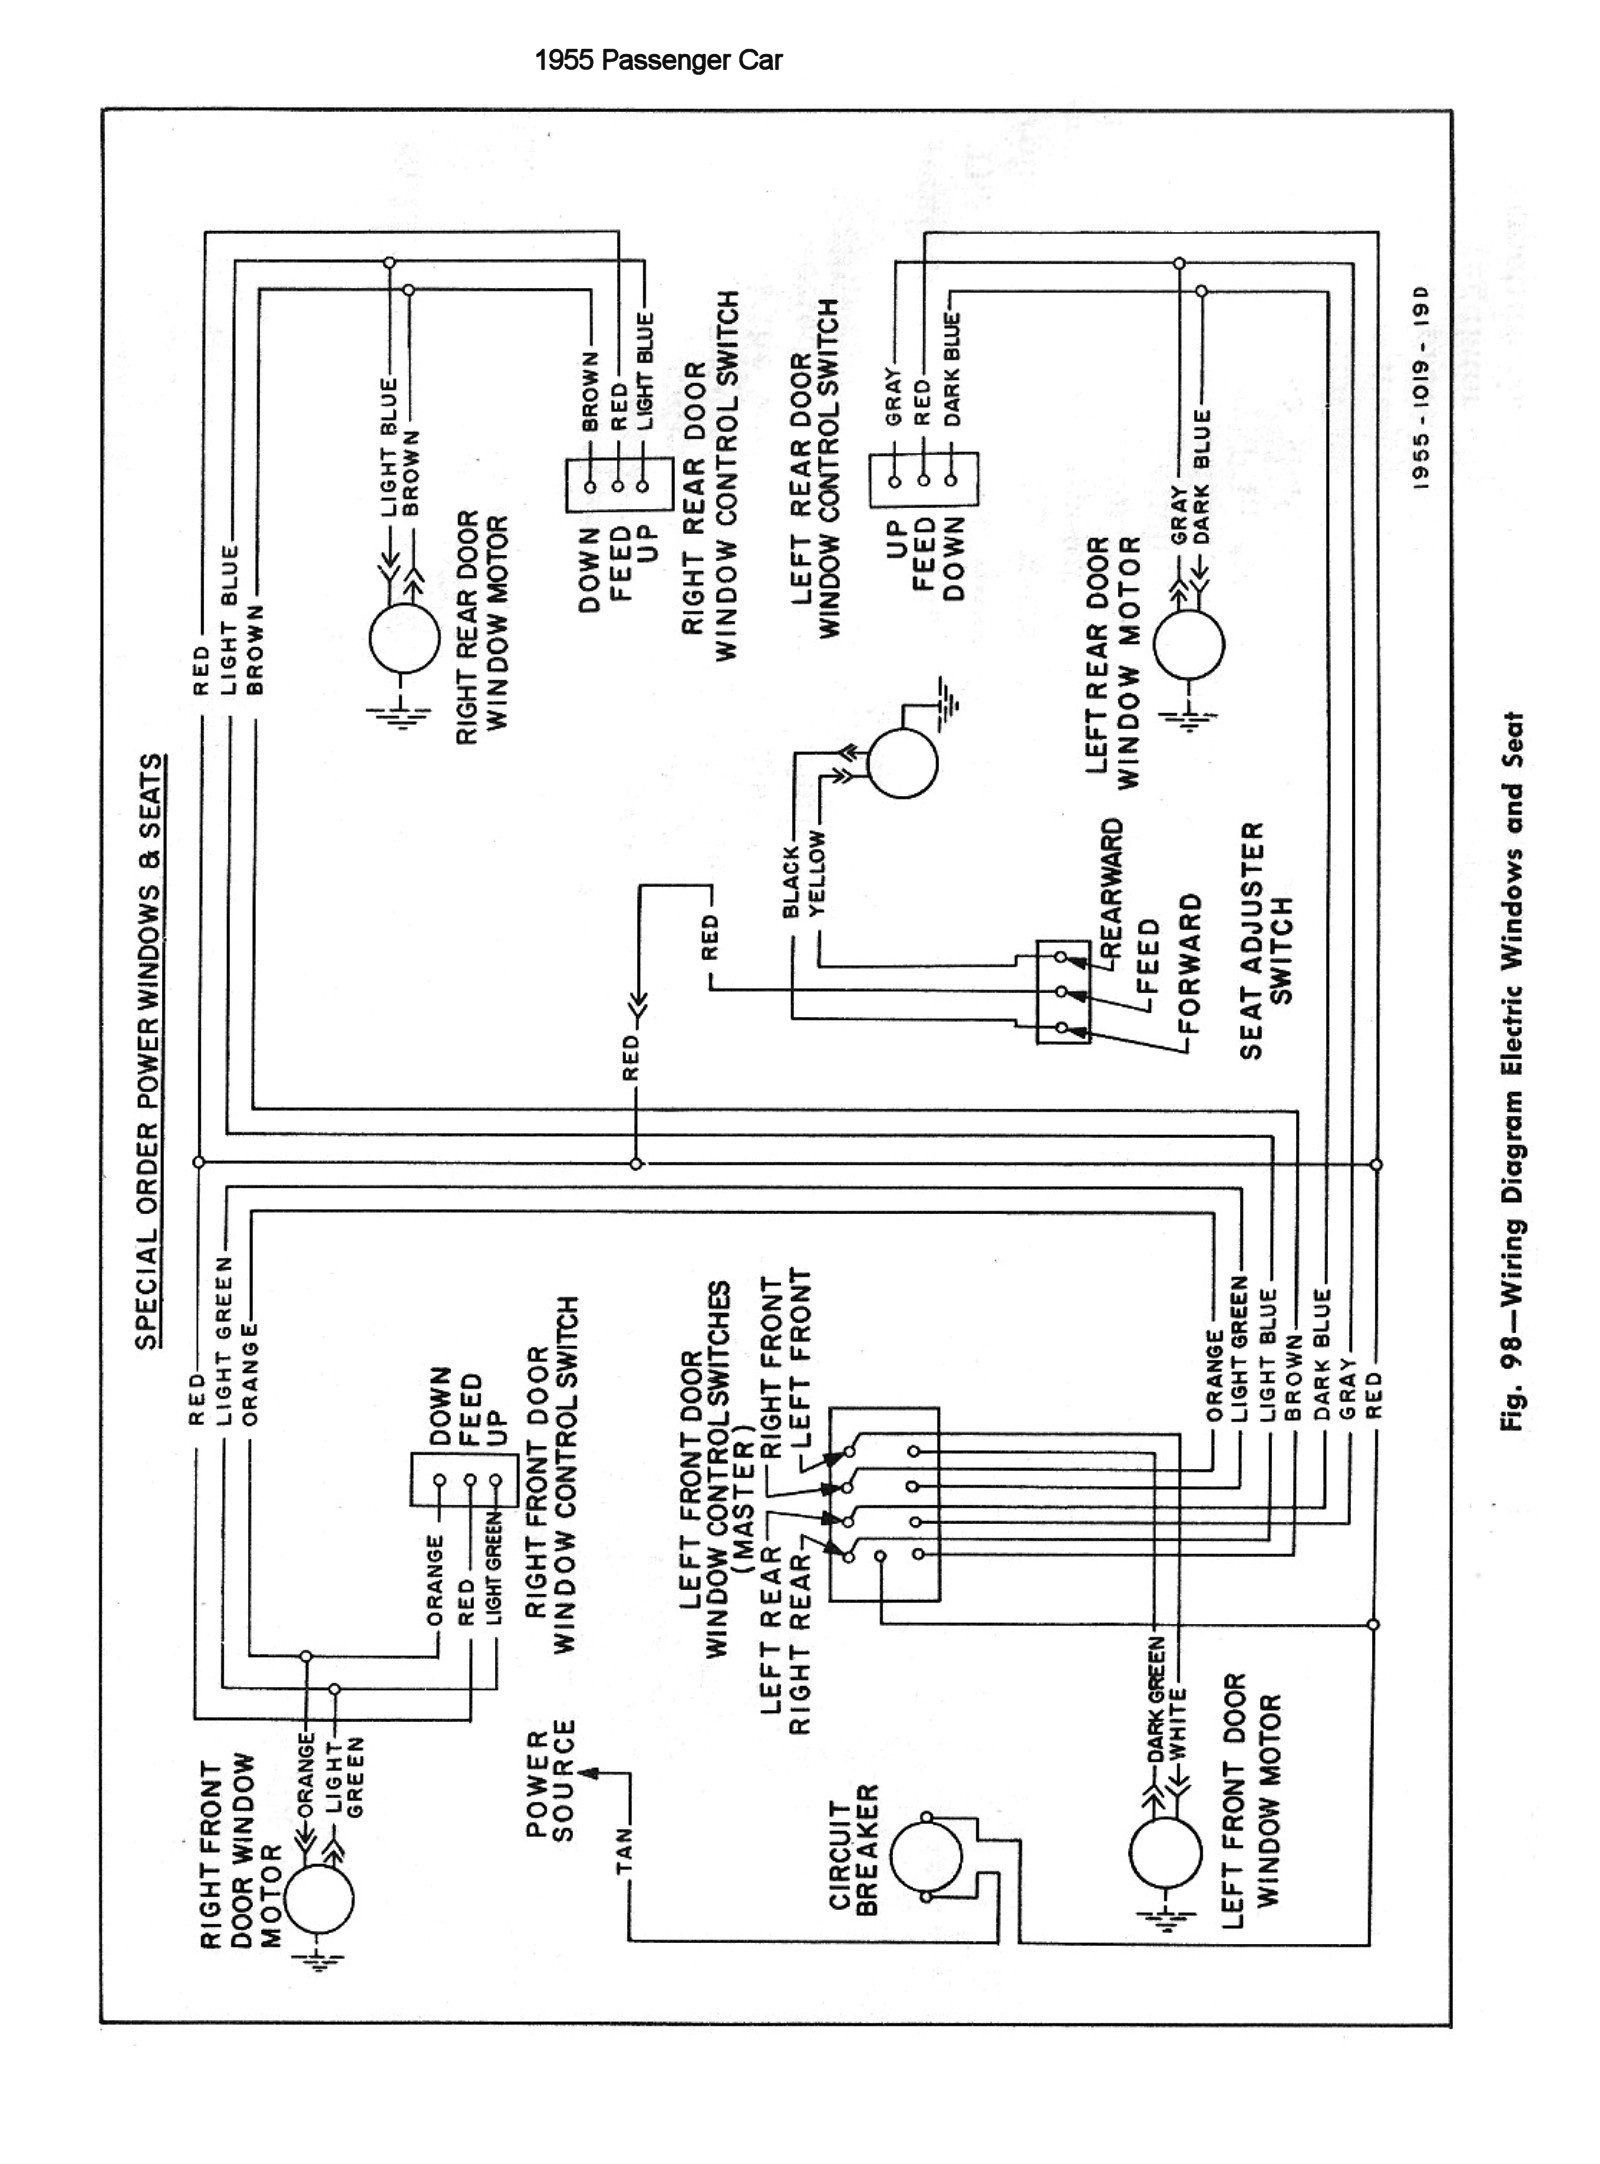 1955 Chevy Bel Air Wiring Diagram Electrical Diagrams Schematics Turn Signal List Of Schematic Circuit Conditioning